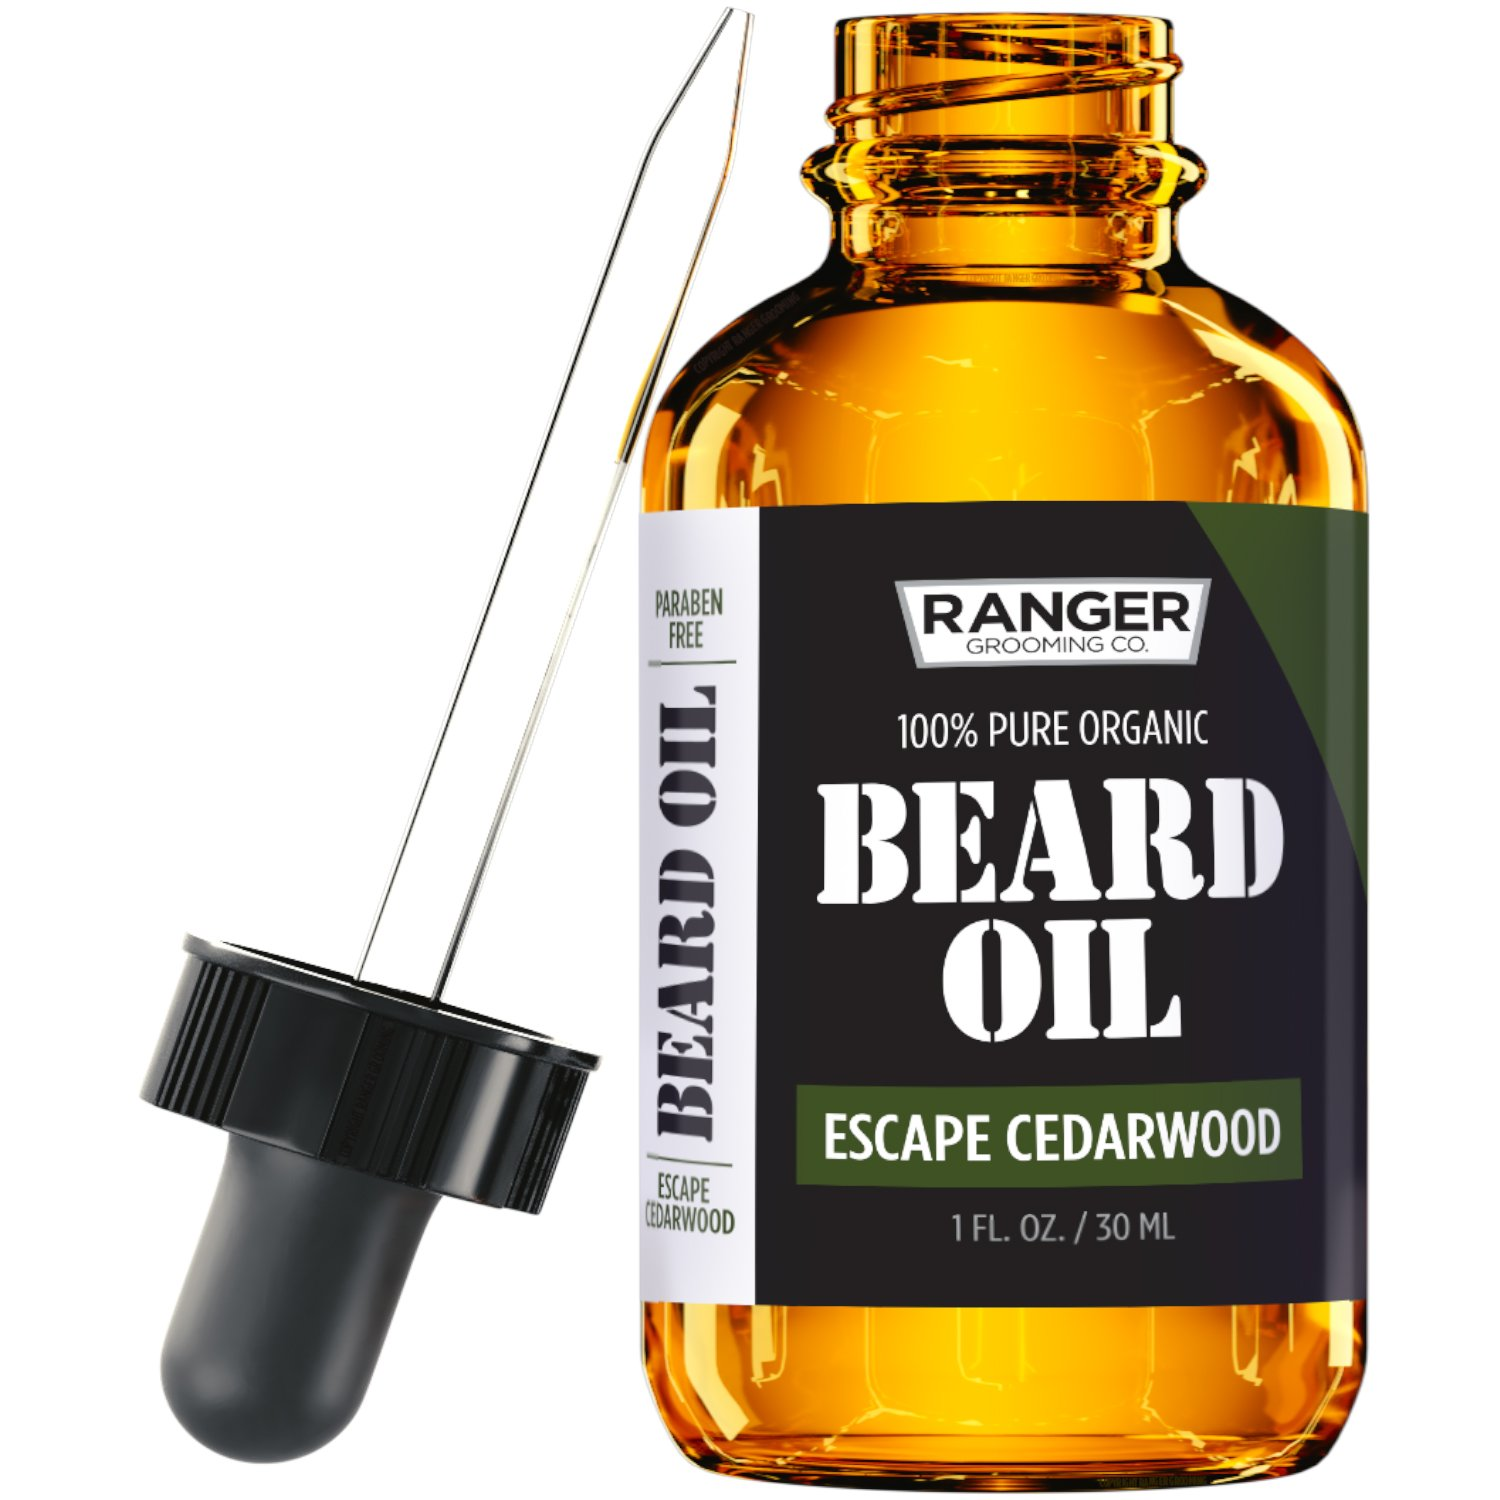 Escape Cedarwood Beard Oil & Leave In Conditioner, 100% Organic Natural for Groomed Beard Growth, Mustache, Skin for Men 1 oz by Ranger Grooming Co by Leven Rose